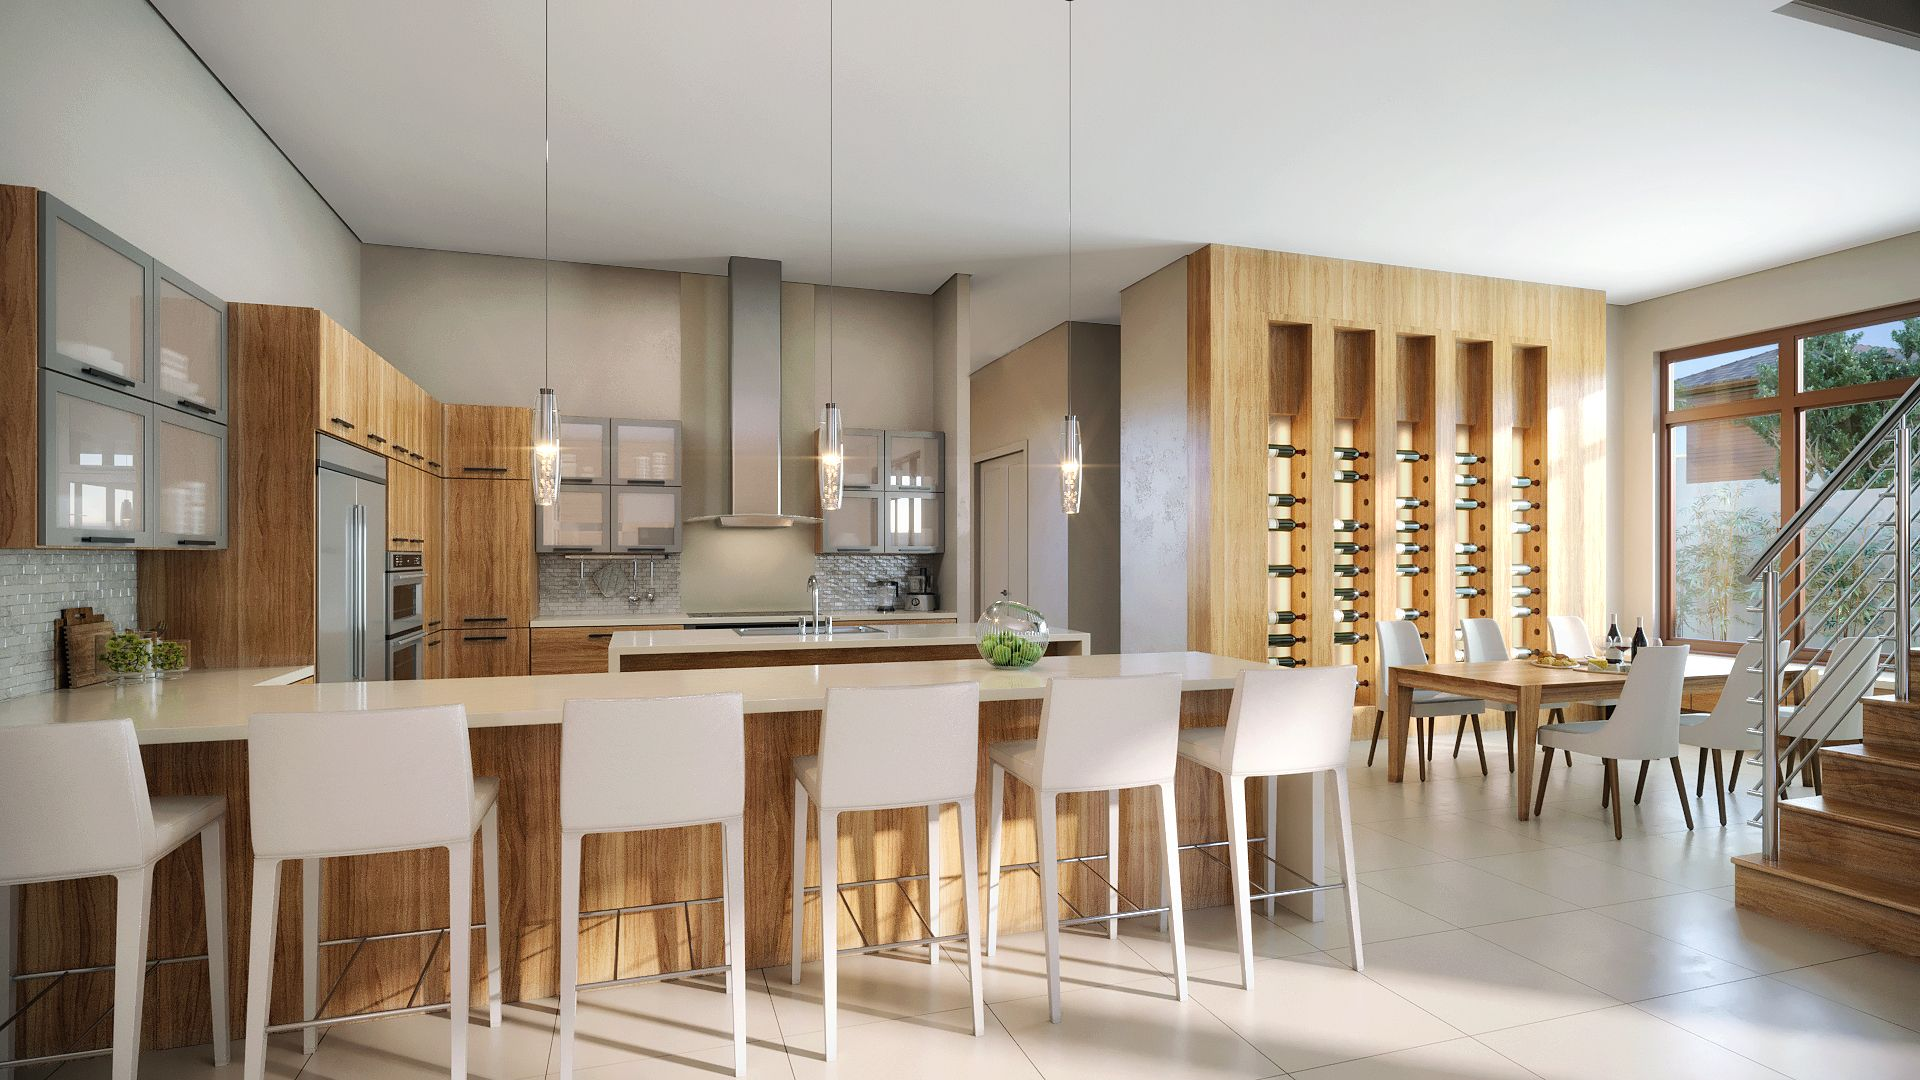 Kitchen featured in the Model B - Two Story By CC Homes in Miami-Dade County, FL